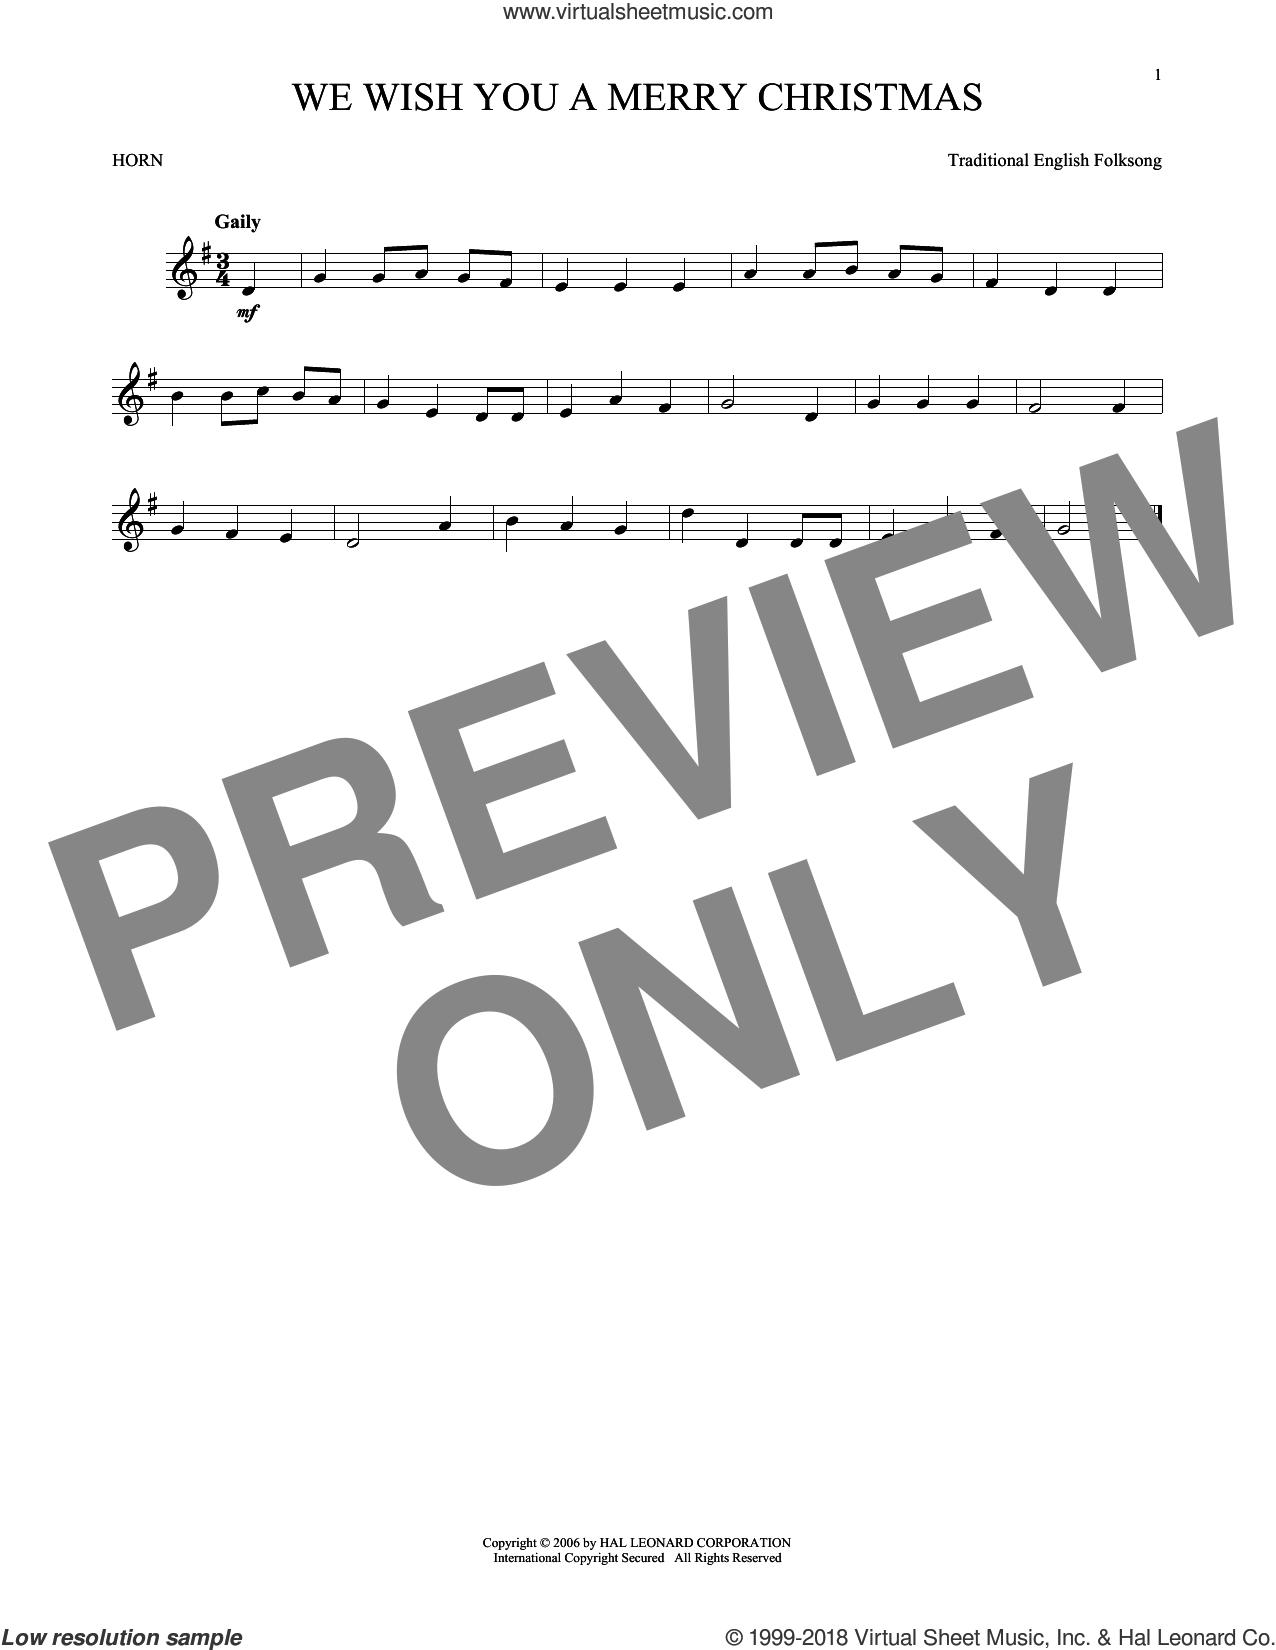 We Wish You A Merry Christmas sheet music for horn solo, intermediate skill level